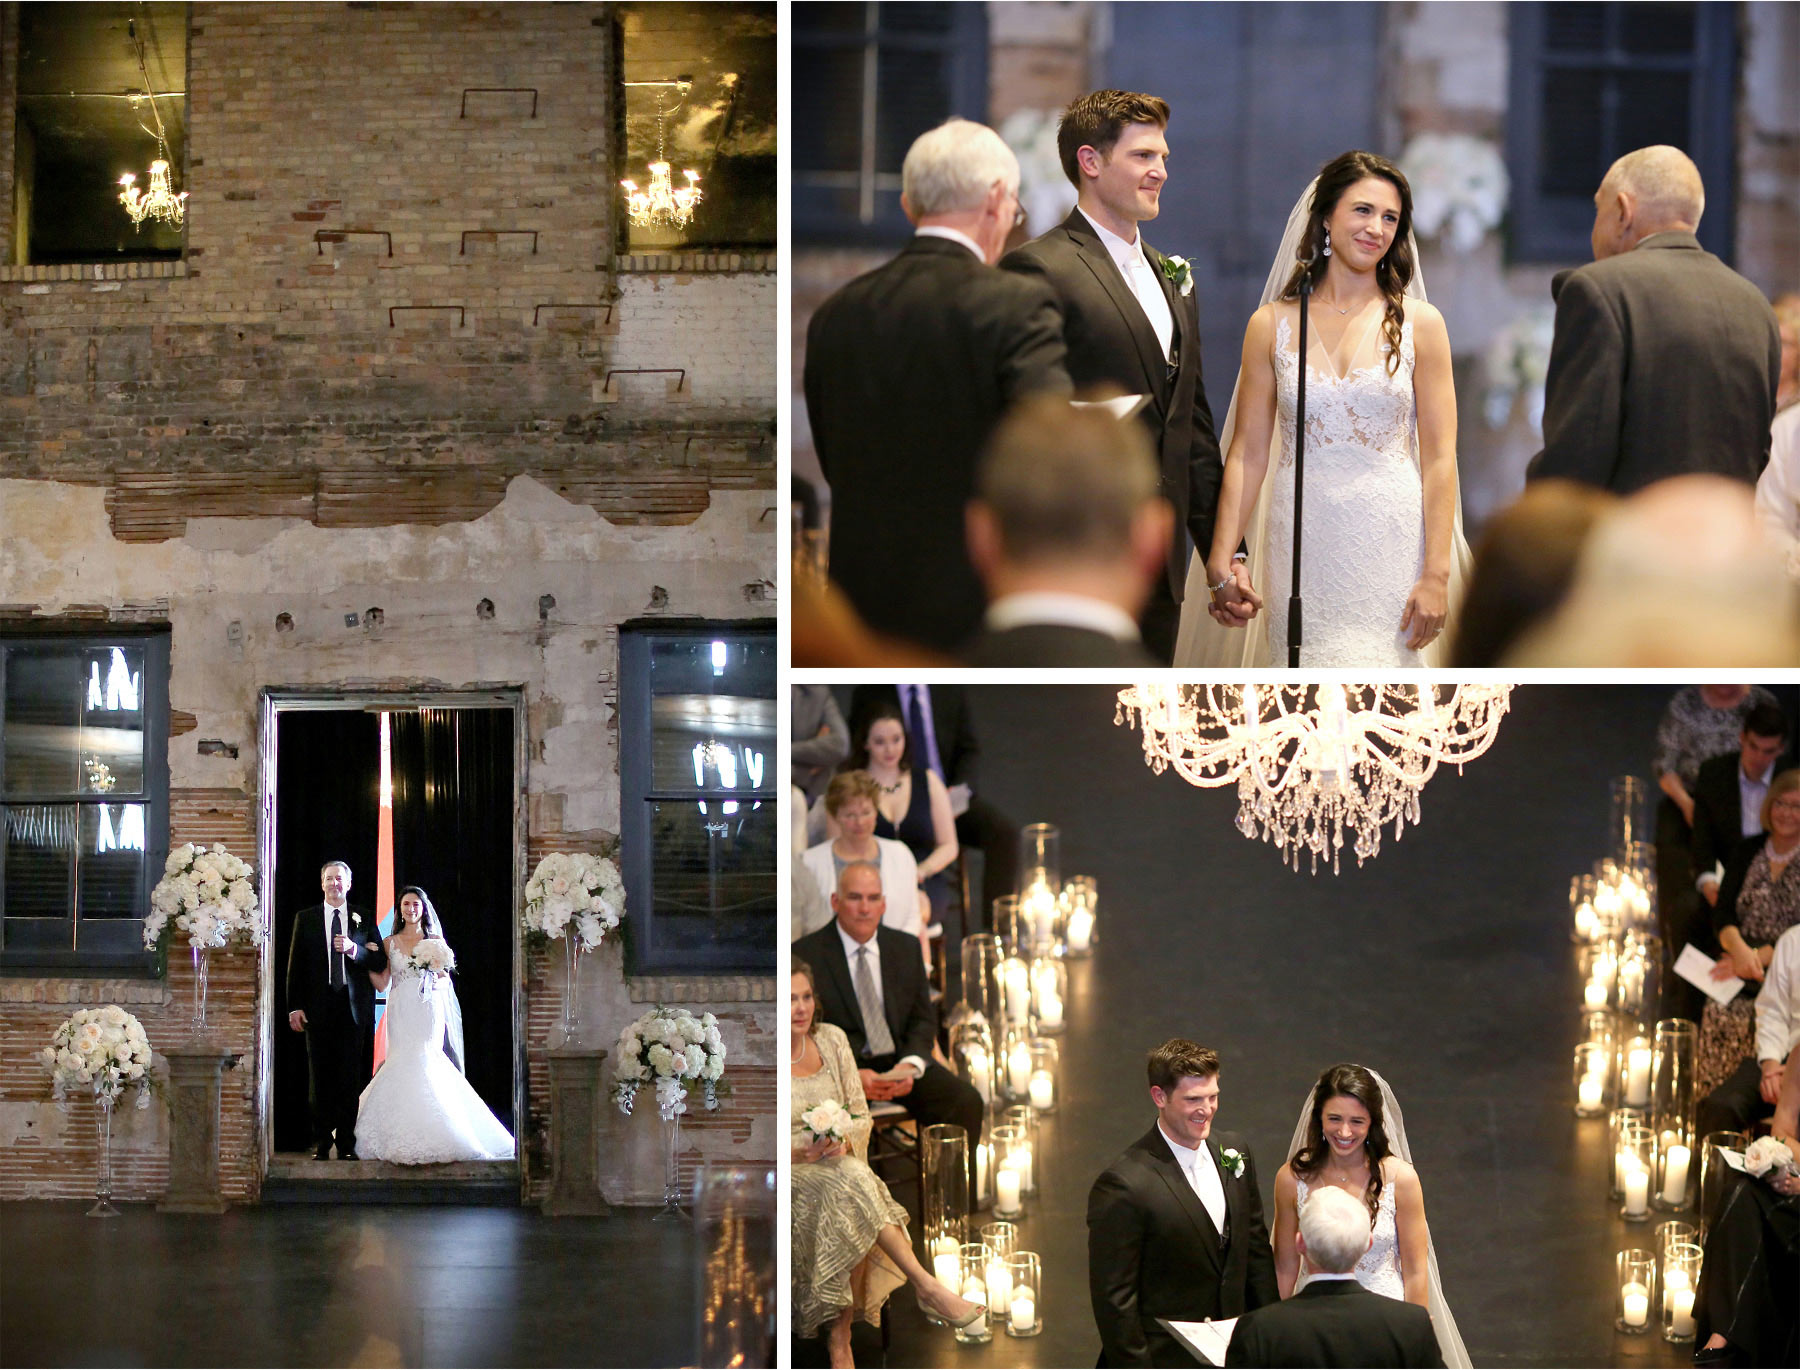 11-Minneapolis-Minnesota-Wedding-Photographer-by-Andrew-Vick-Photography-Aria-Spring-Ceremony-Bride-Groom-Father-Parents-Processional-Vows-Alex-and-Andy.jpg